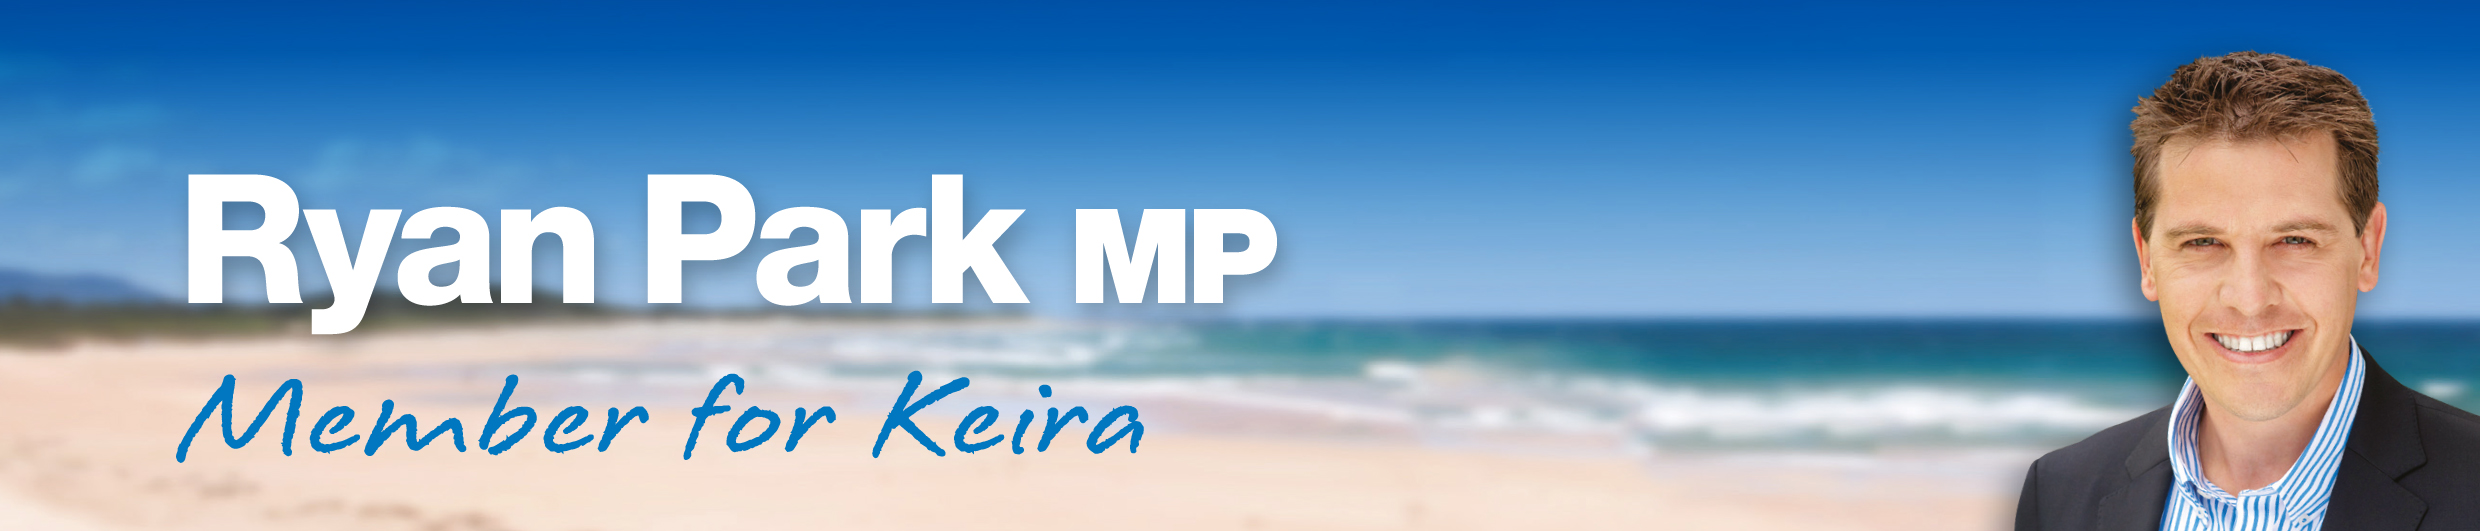 Ryan Park, MP Logo